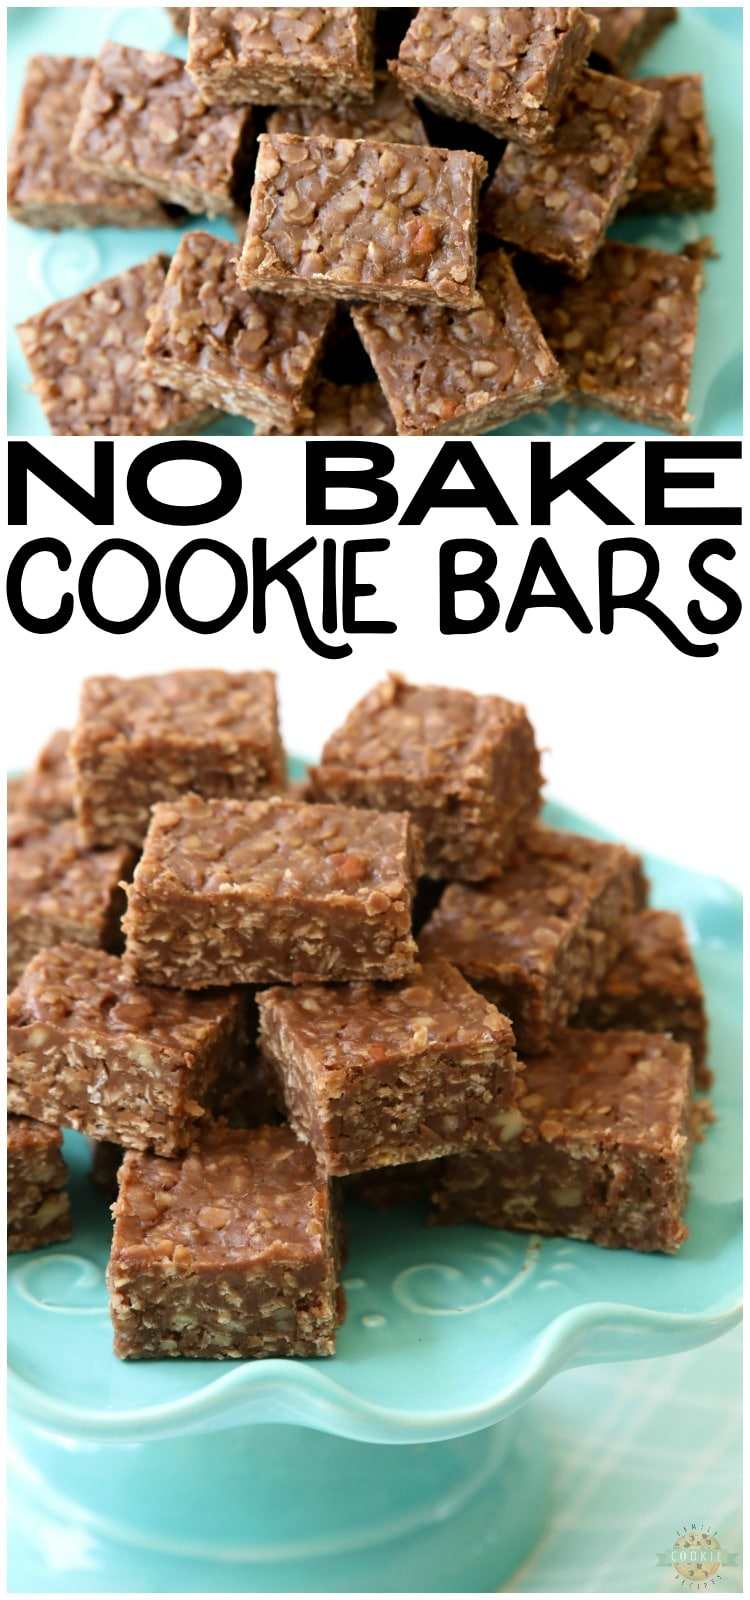 No Bake Cookie Barsrecipe is a quick variation on THE BEST no bake cookies recipe. Made with quick oats & chocolate chips, these no bake oatmeal cookiescouldn't be tastier! via @buttergirls